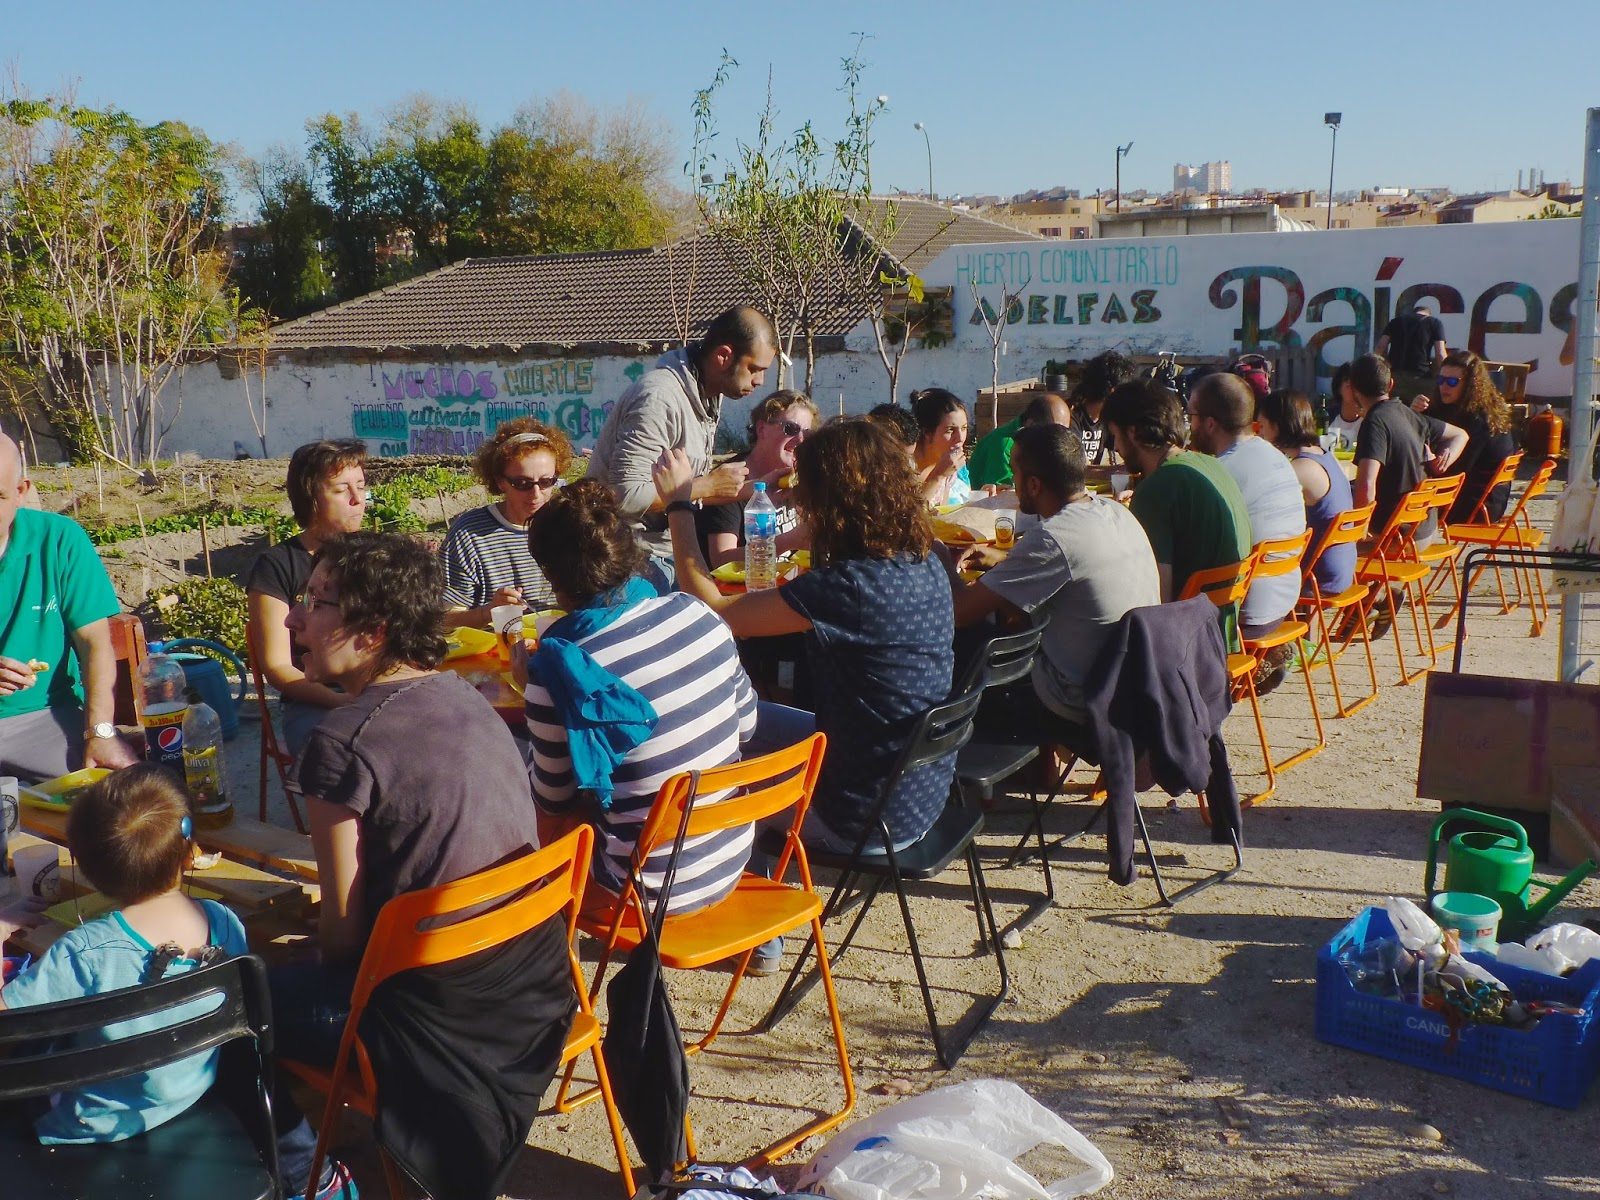 Photo of sharing a meal in Adelfas community garden. Credit: Alberto del Rio